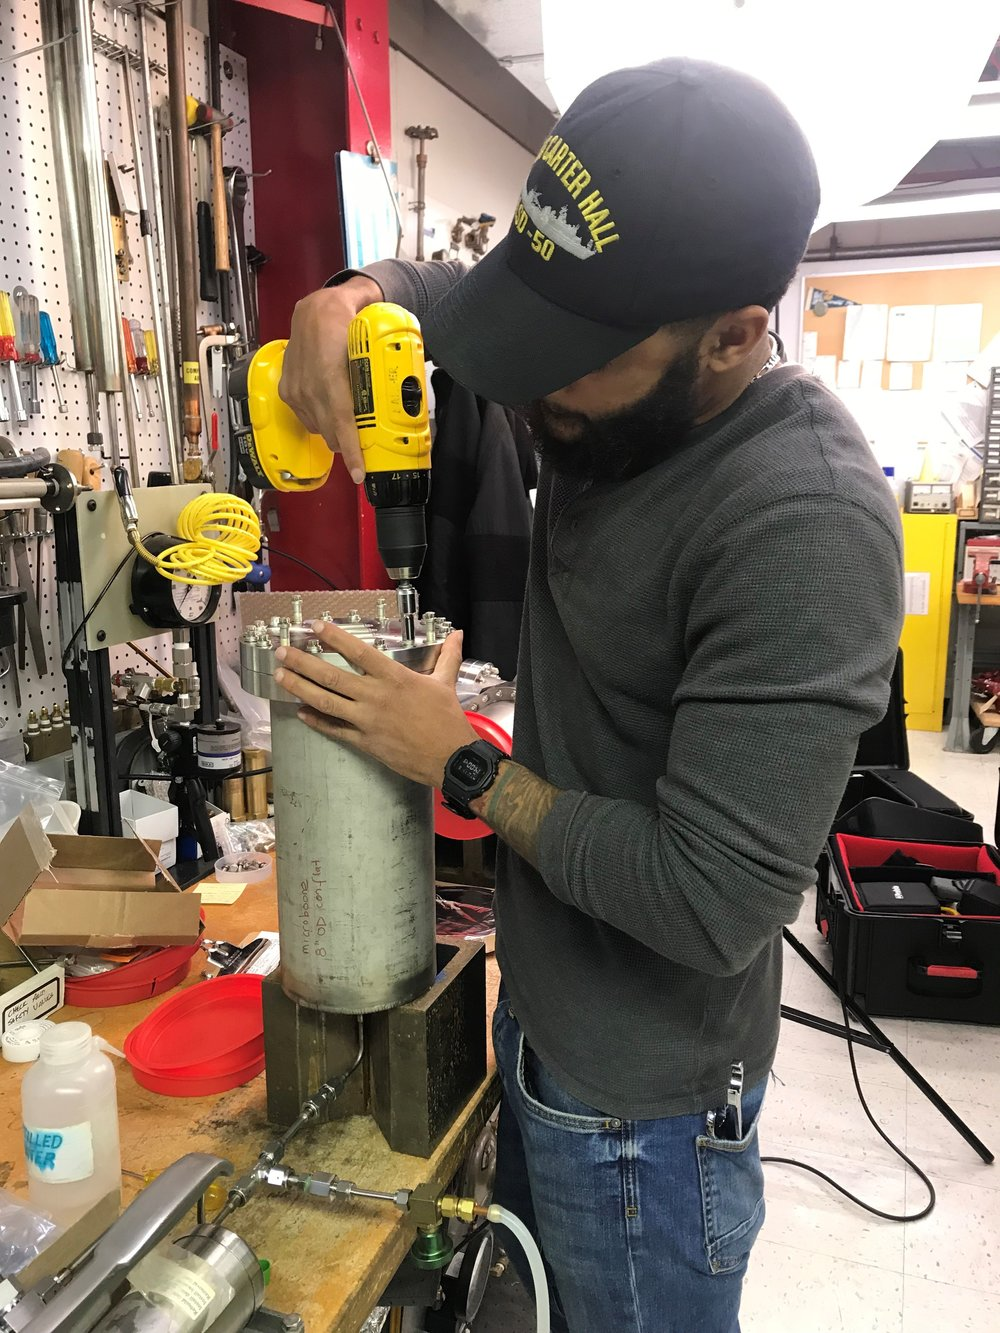 Navy veteran Frederick Davis is working on a mechanical engineering degree and getting real world experience at Fermi Lab thanks to the Vet-Tech Internship program